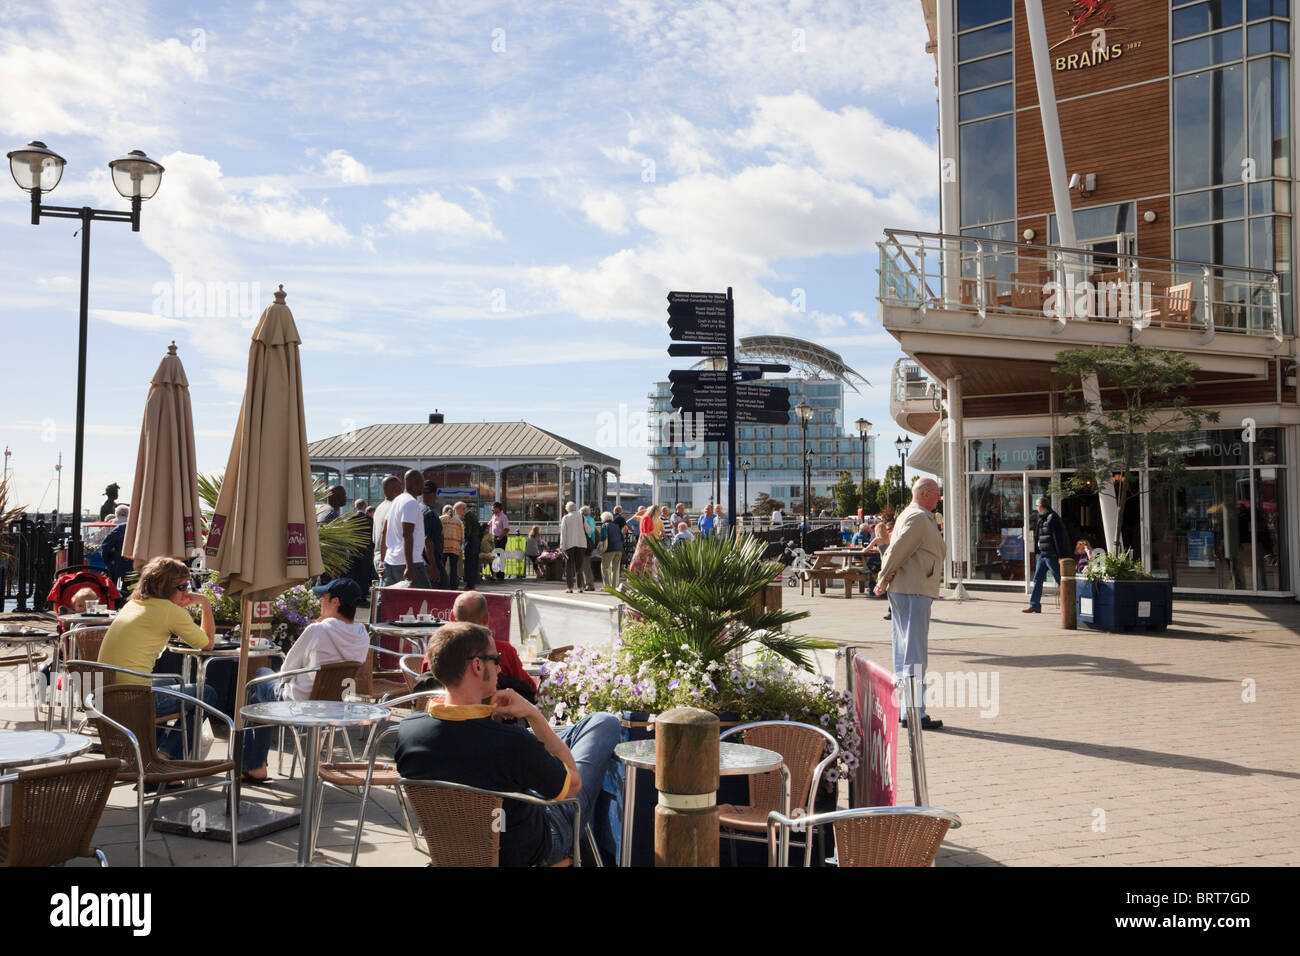 People sitting outside in pavement cafés on waterfront. Mermaid Quay, Cardiff Bay, Glamorgan, South Wales, - Stock Image